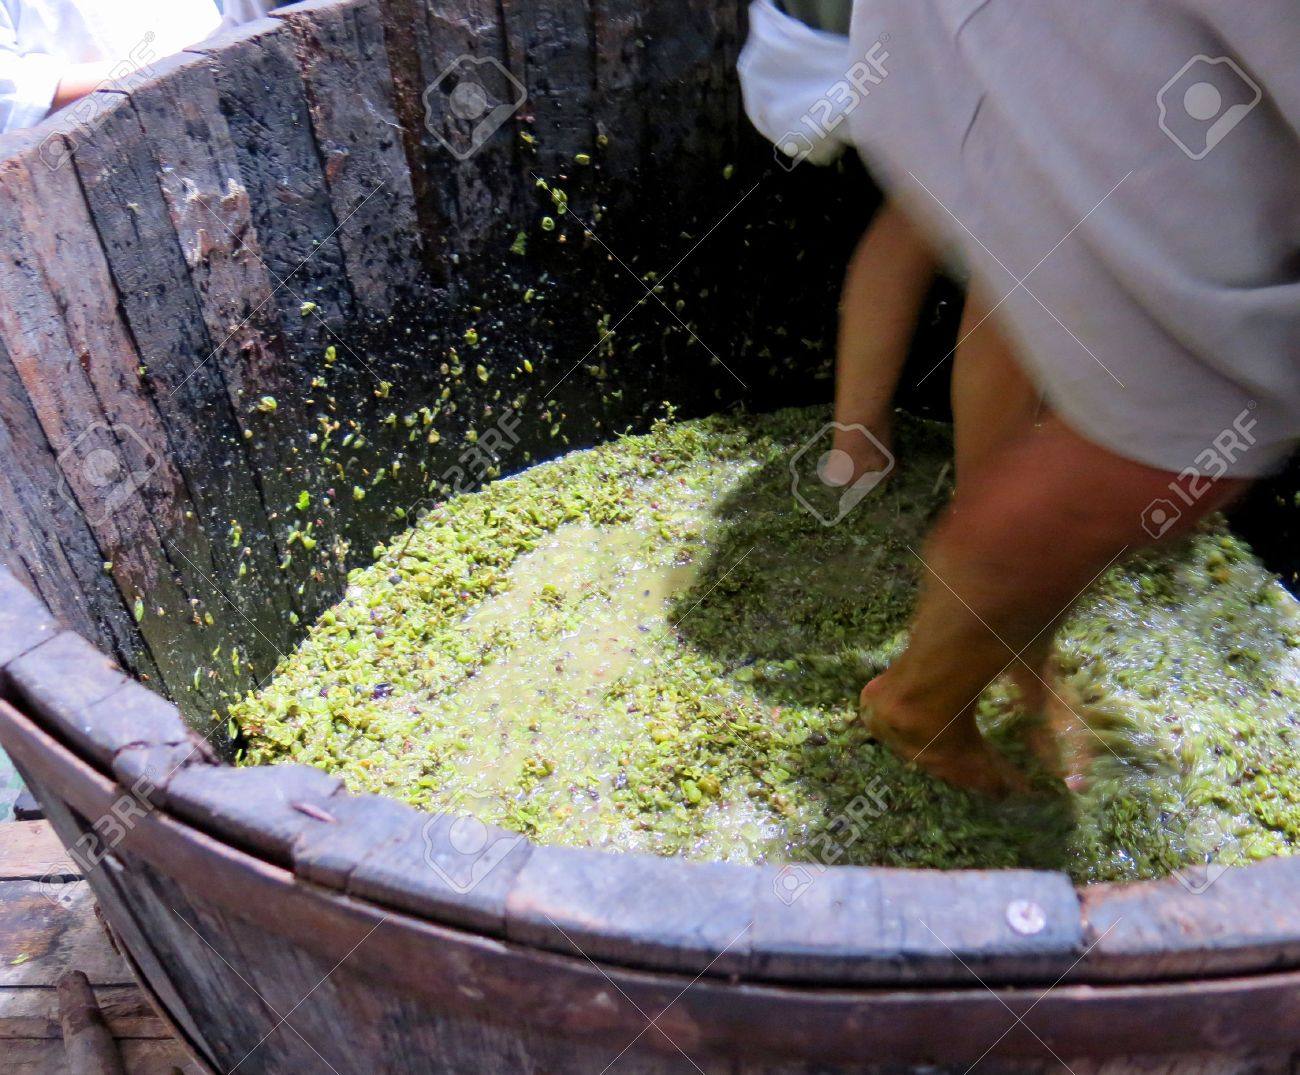 men and women inside the tank to press the white grapes to make good wine Stock Photo - 23785352